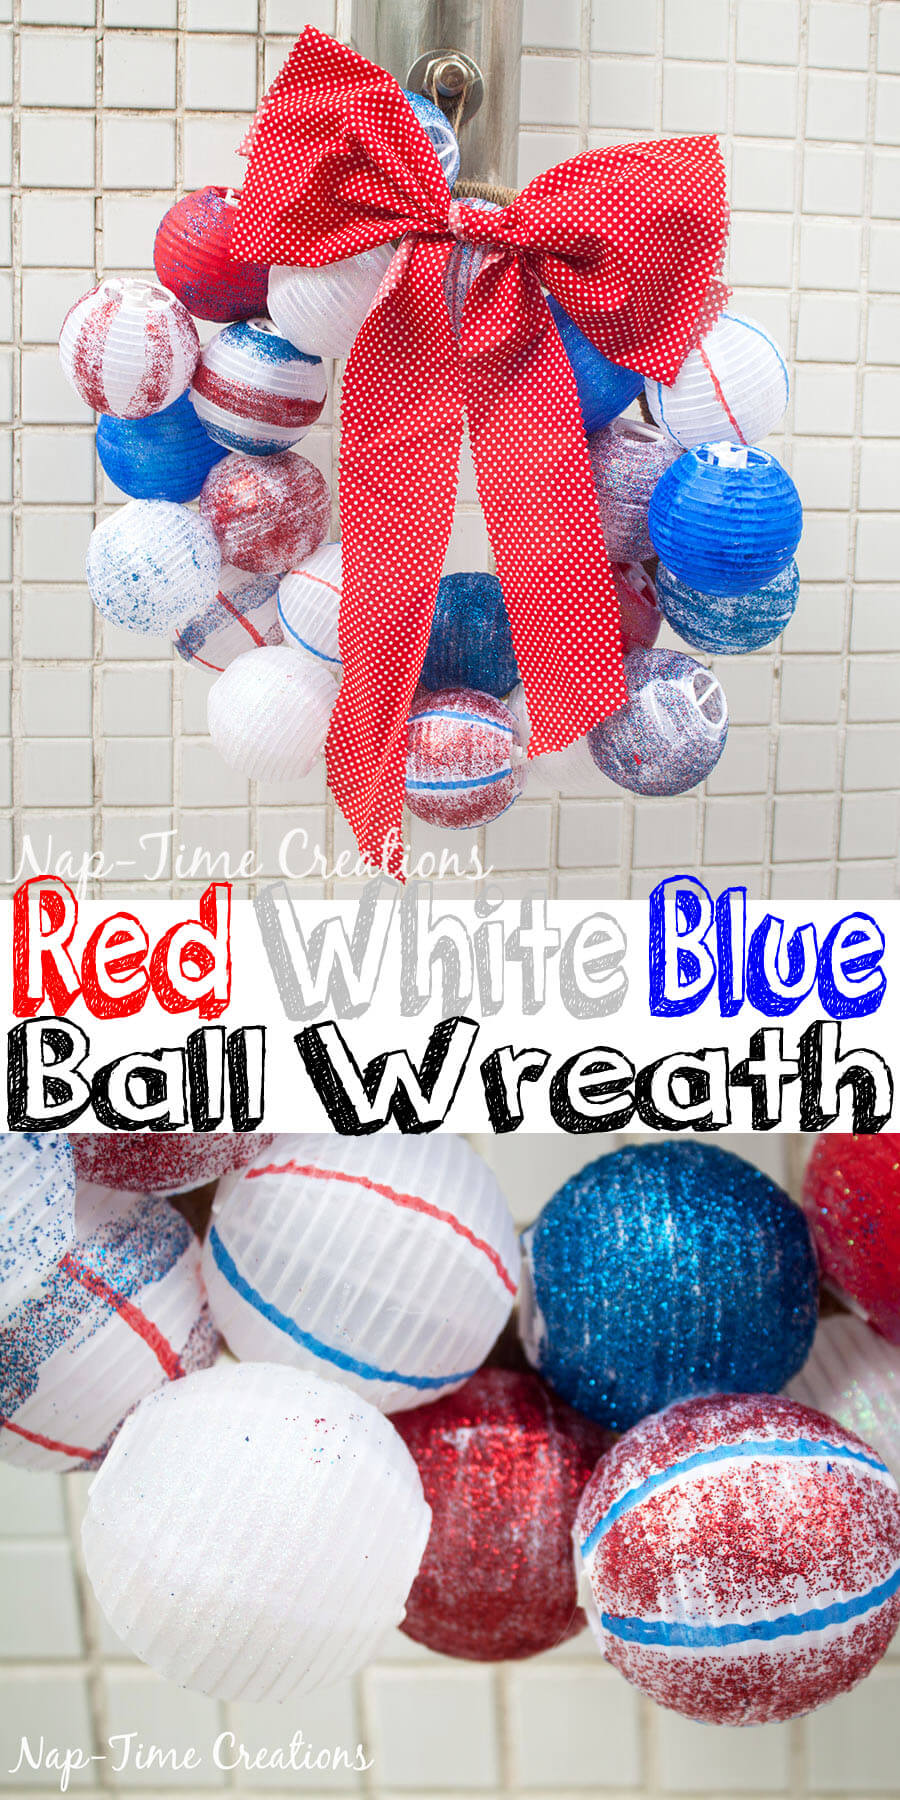 red-white-and-blue-ball-wreath-DIY-from-Nap-Time-Creations-for-Sugar-Bee-Crafts